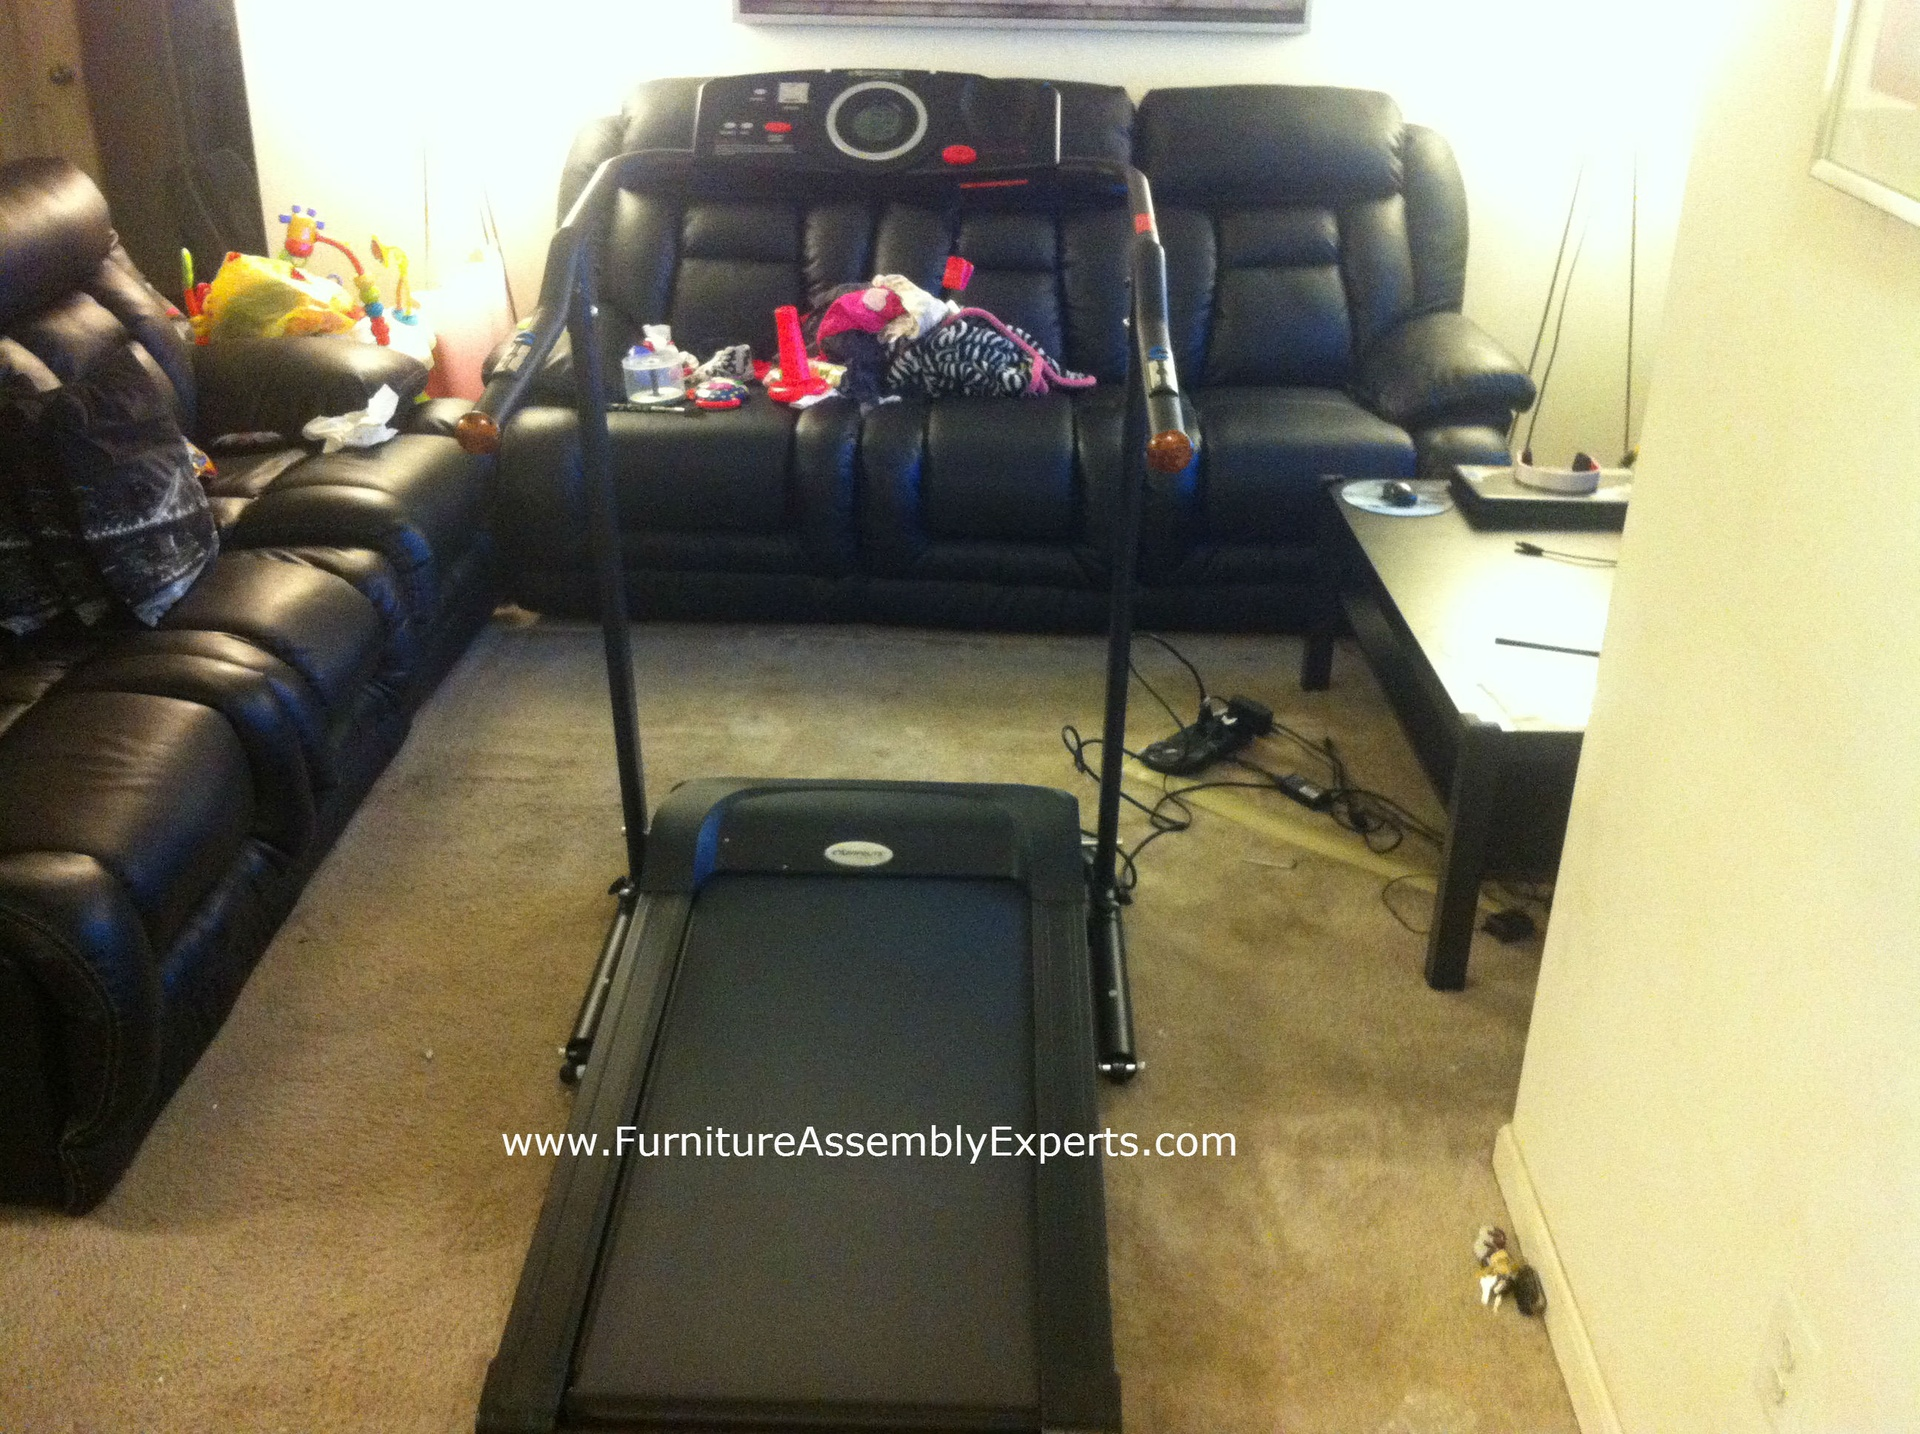 Exerpeutic treadmill assembly service in DC MD VA